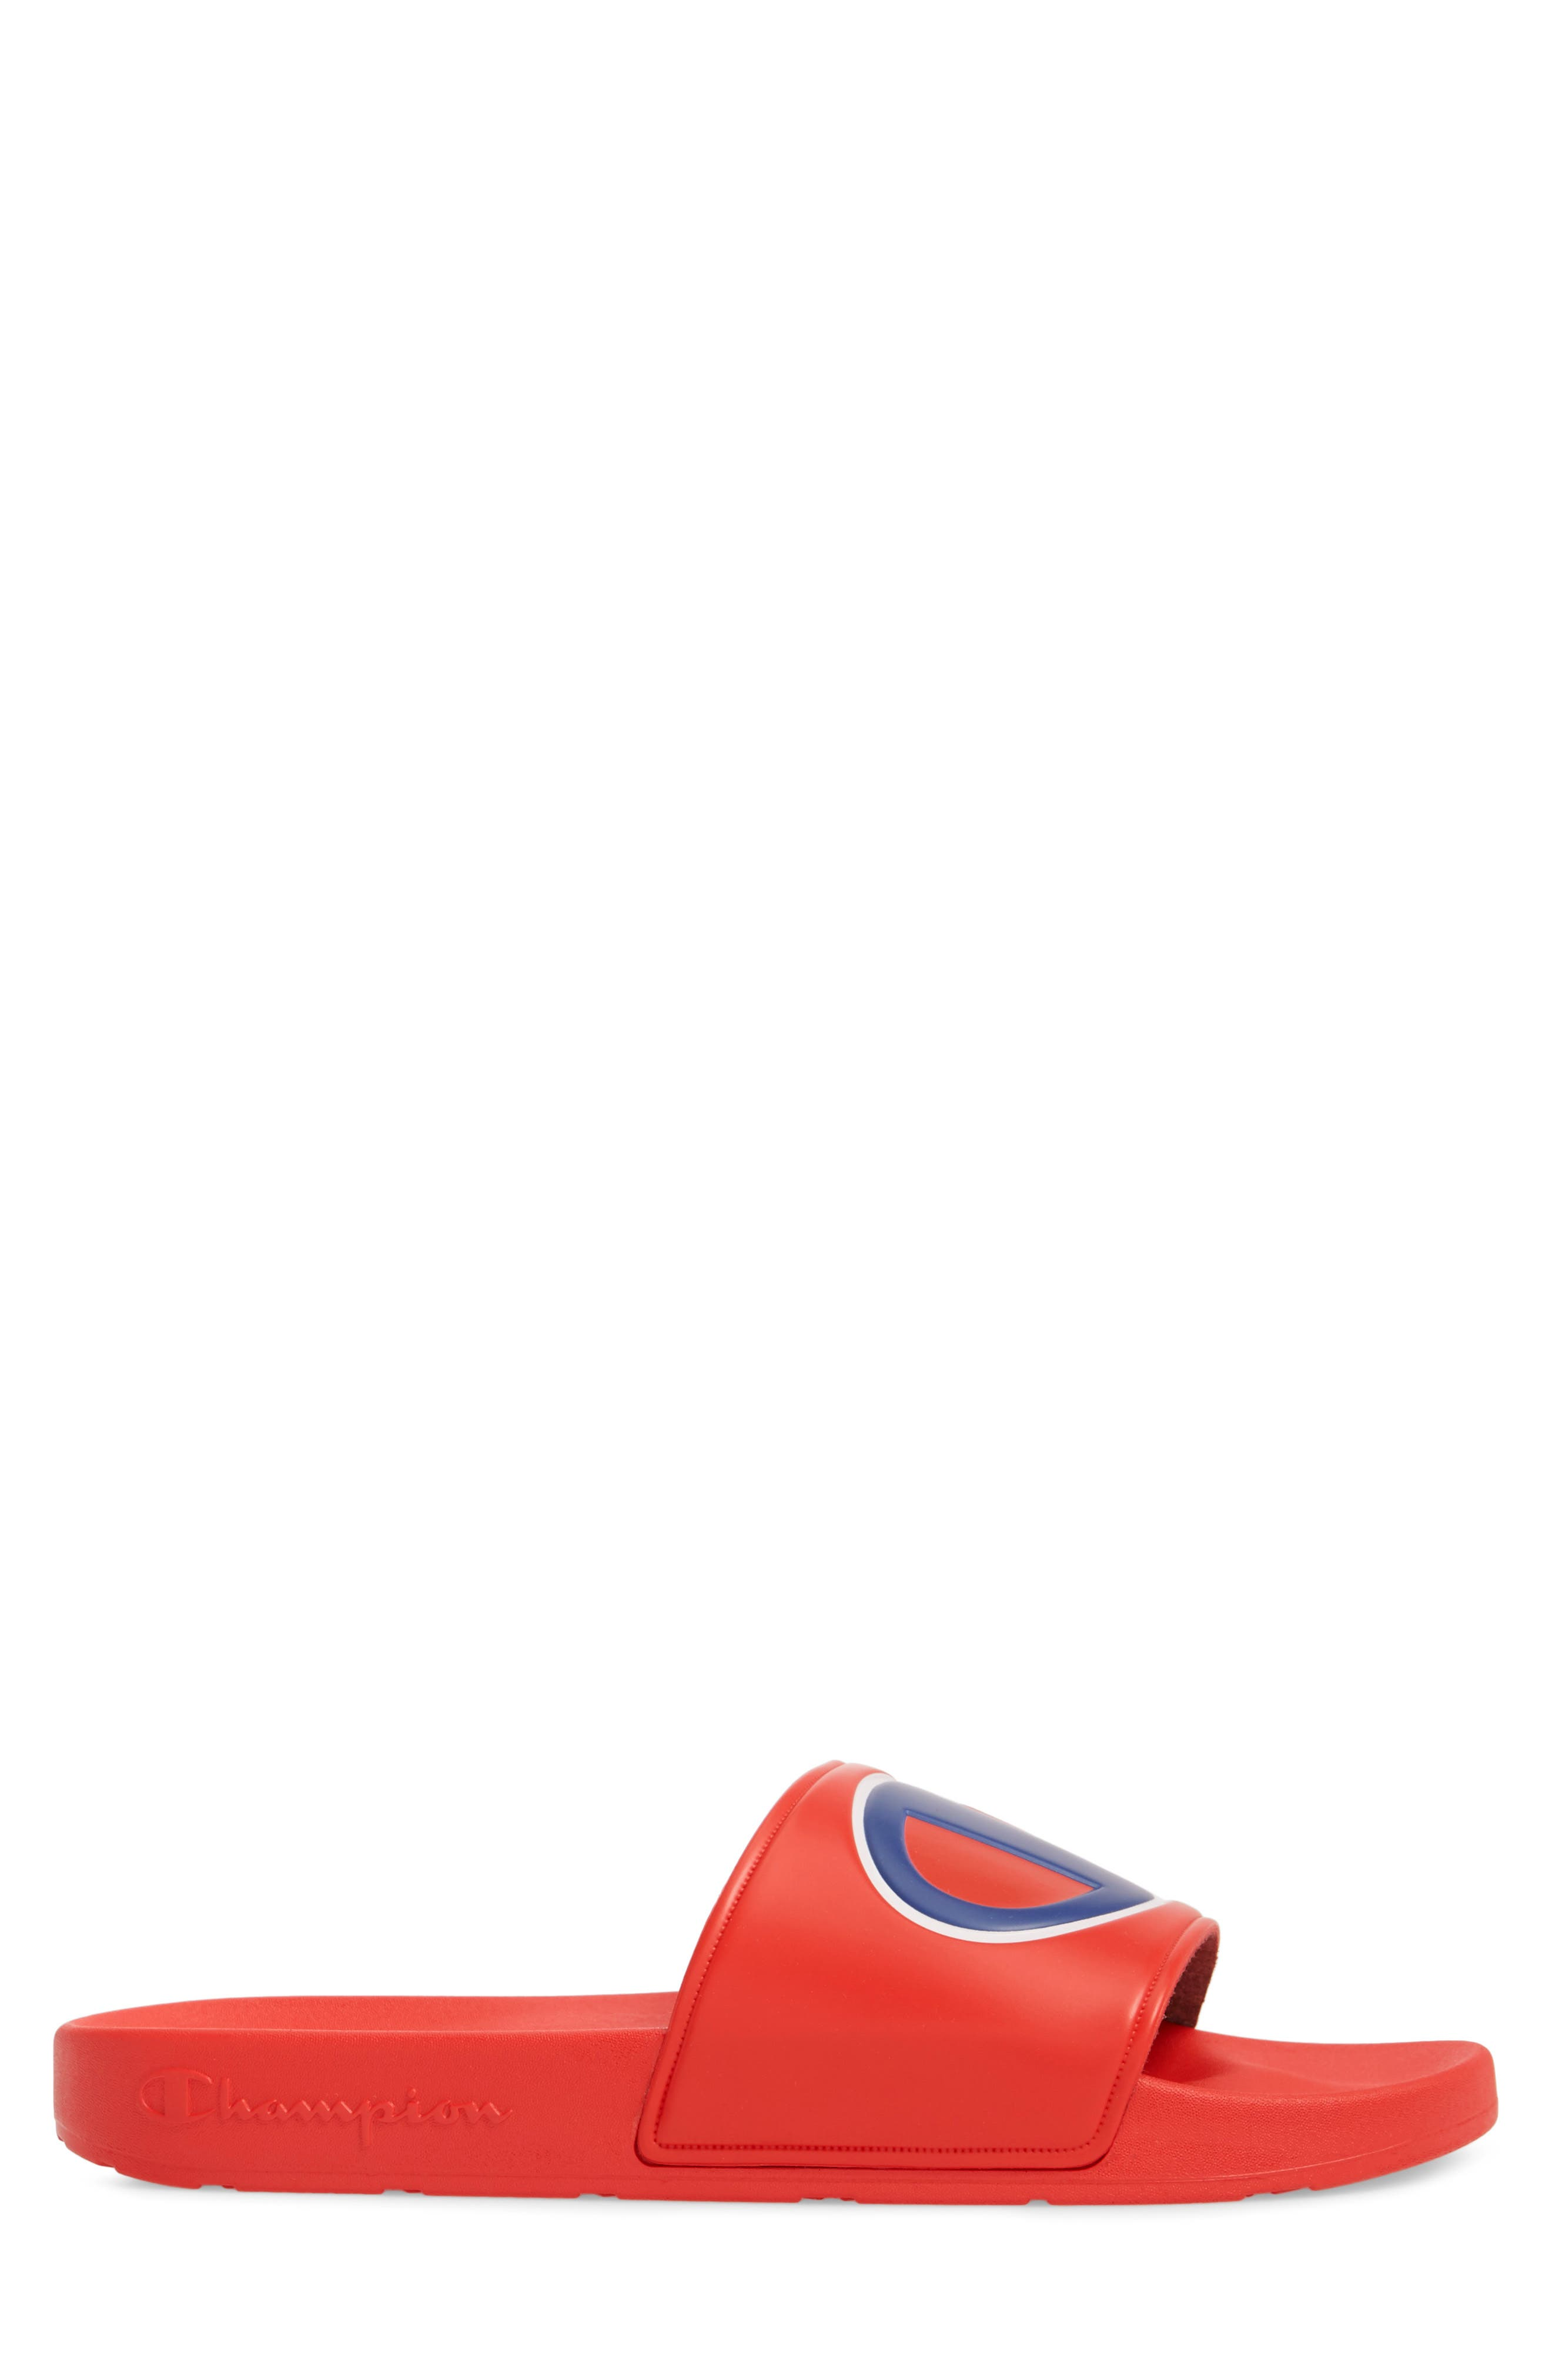 IPO Sports Slide,                             Alternate thumbnail 4, color,                             Red